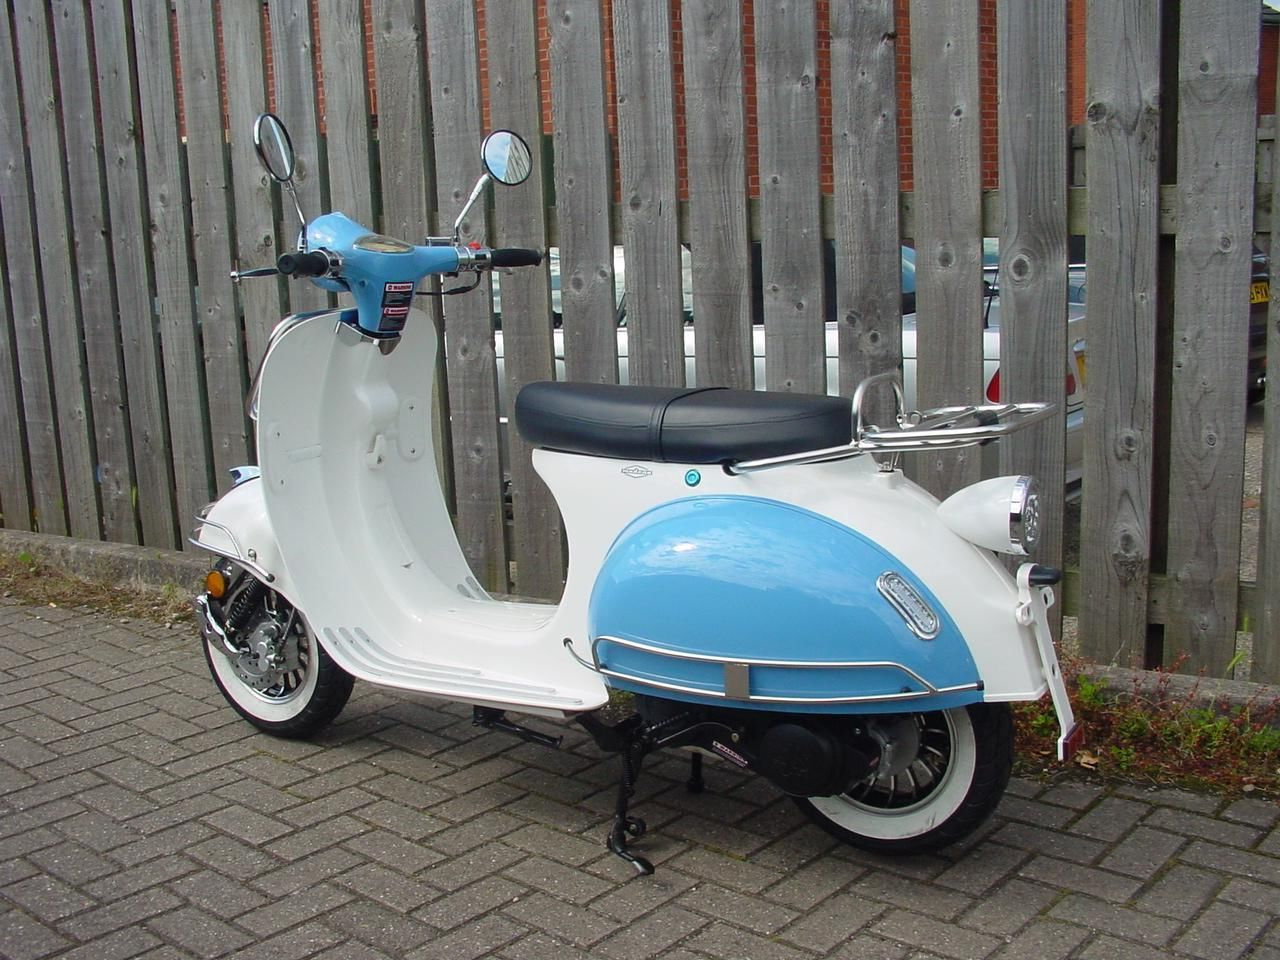 ajs modena 125 retro vespa lambretta style scooter new fully automatic. Black Bedroom Furniture Sets. Home Design Ideas